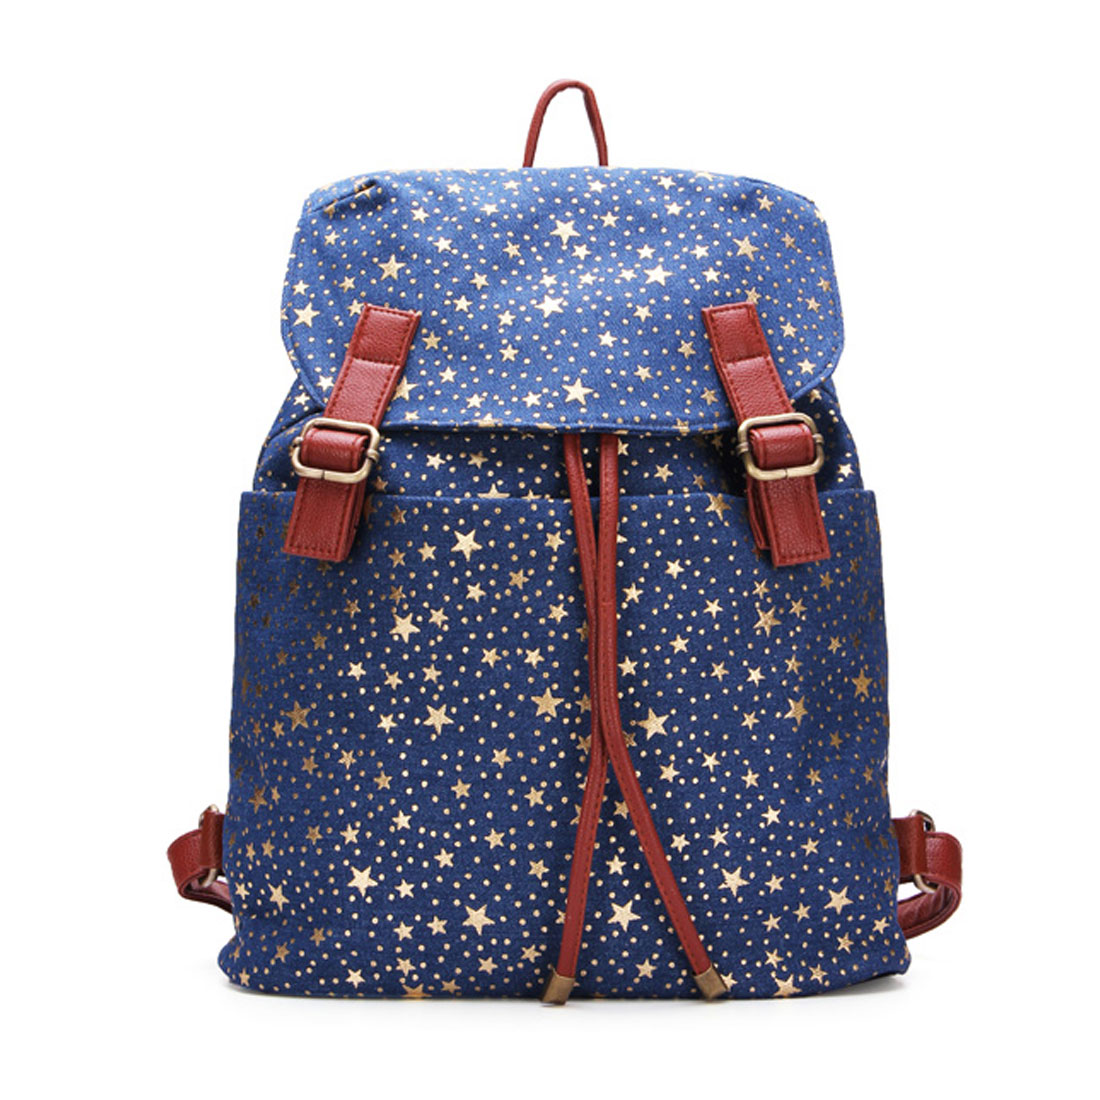 Women's Preppy Style Stars Canvas Backpack Bookbag Schoolbag